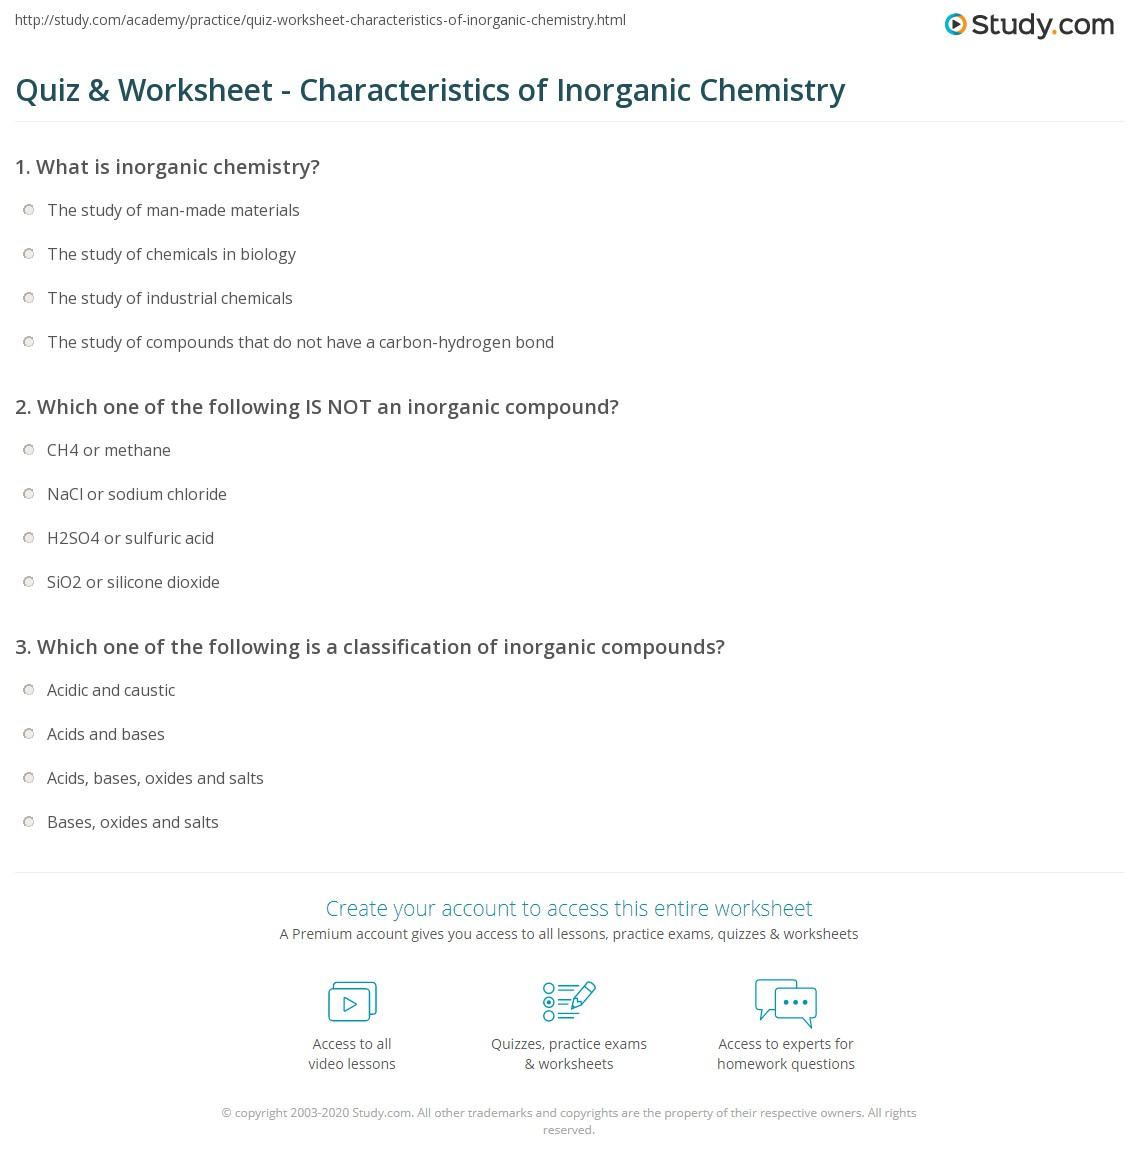 worksheet chemistry worksheet answers grass fedjp worksheet study site. Black Bedroom Furniture Sets. Home Design Ideas